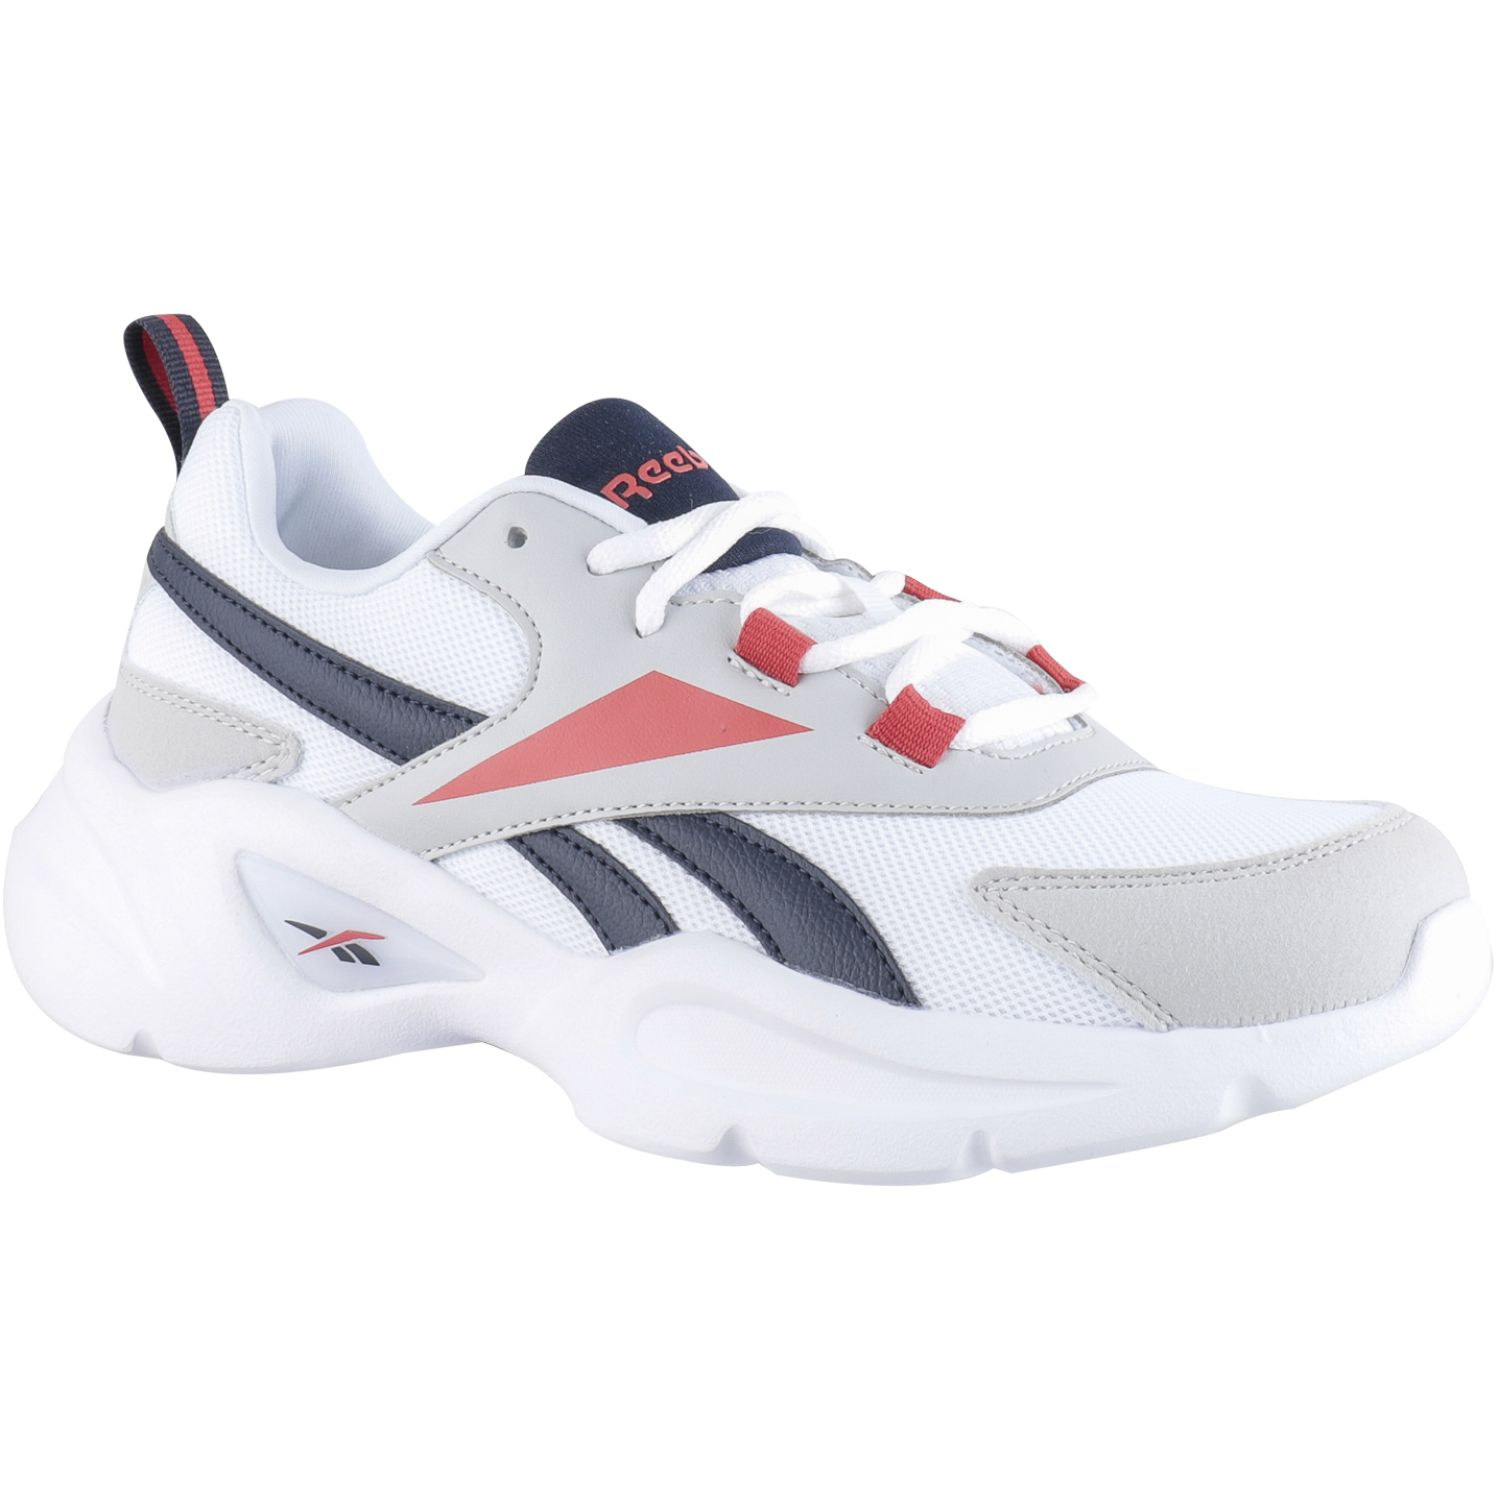 Reebok Reebok Royal Ec Ride 4 Blanco Running en pista